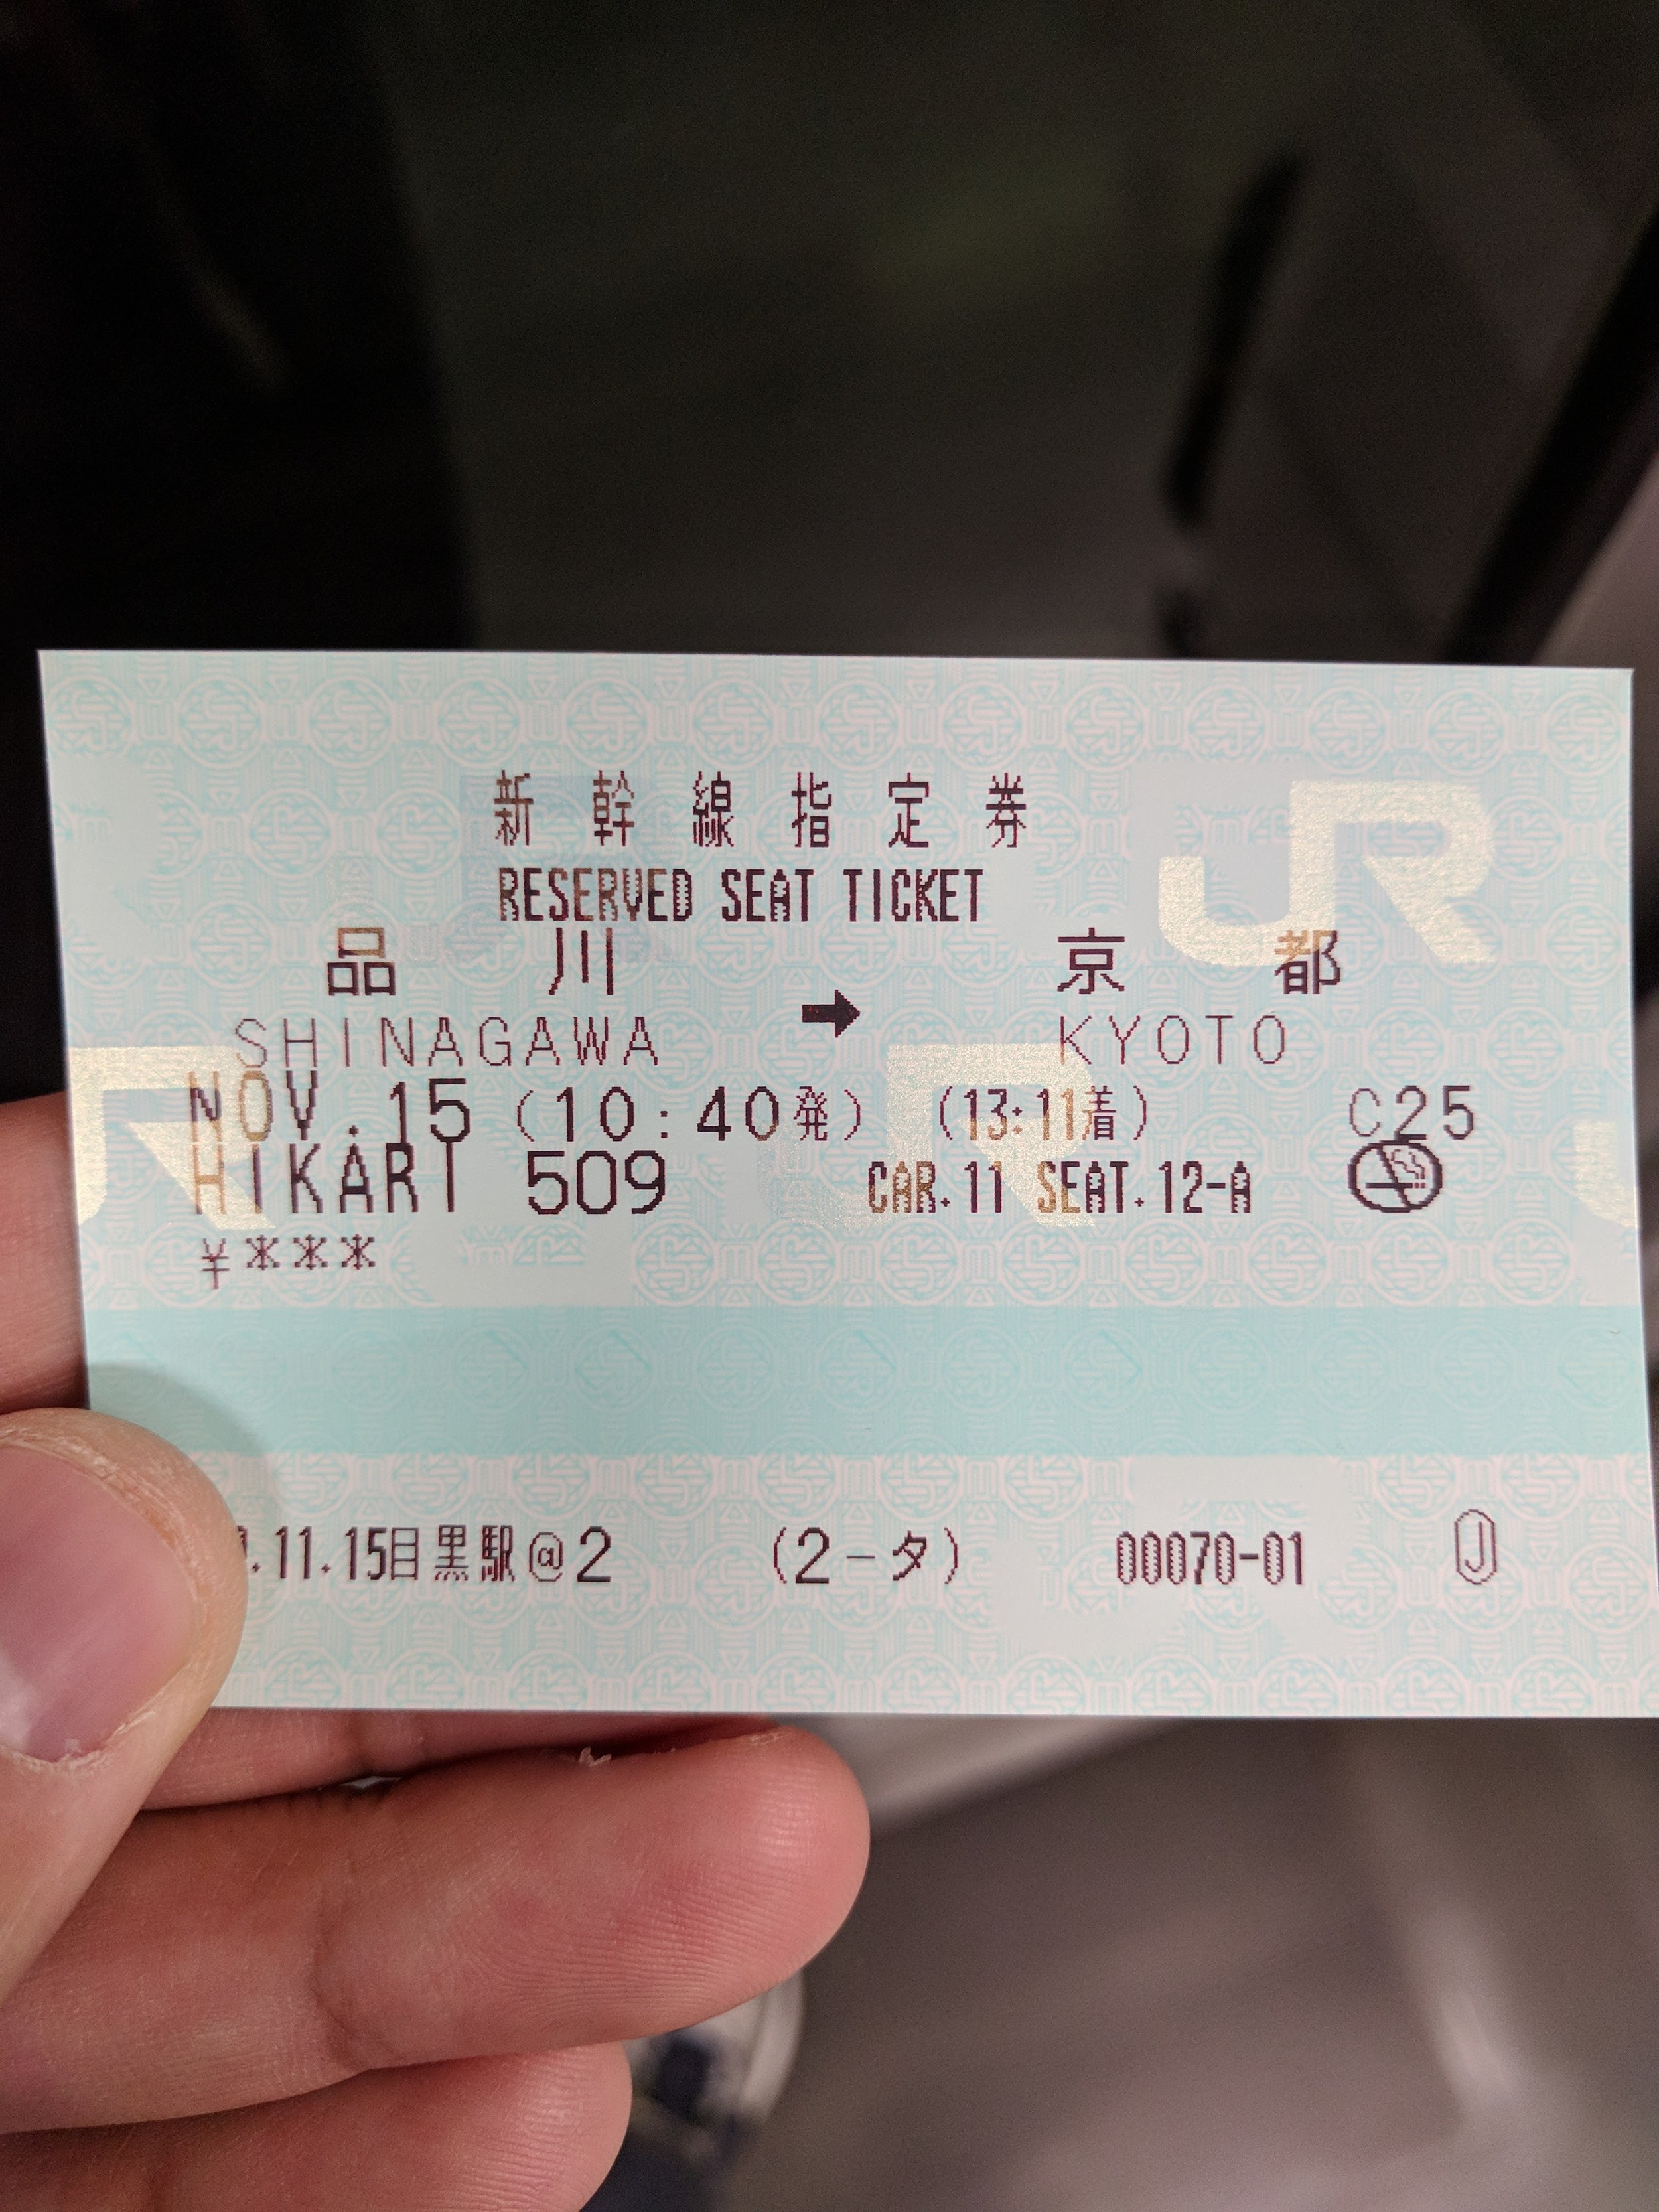 My ticket to Kyoto.